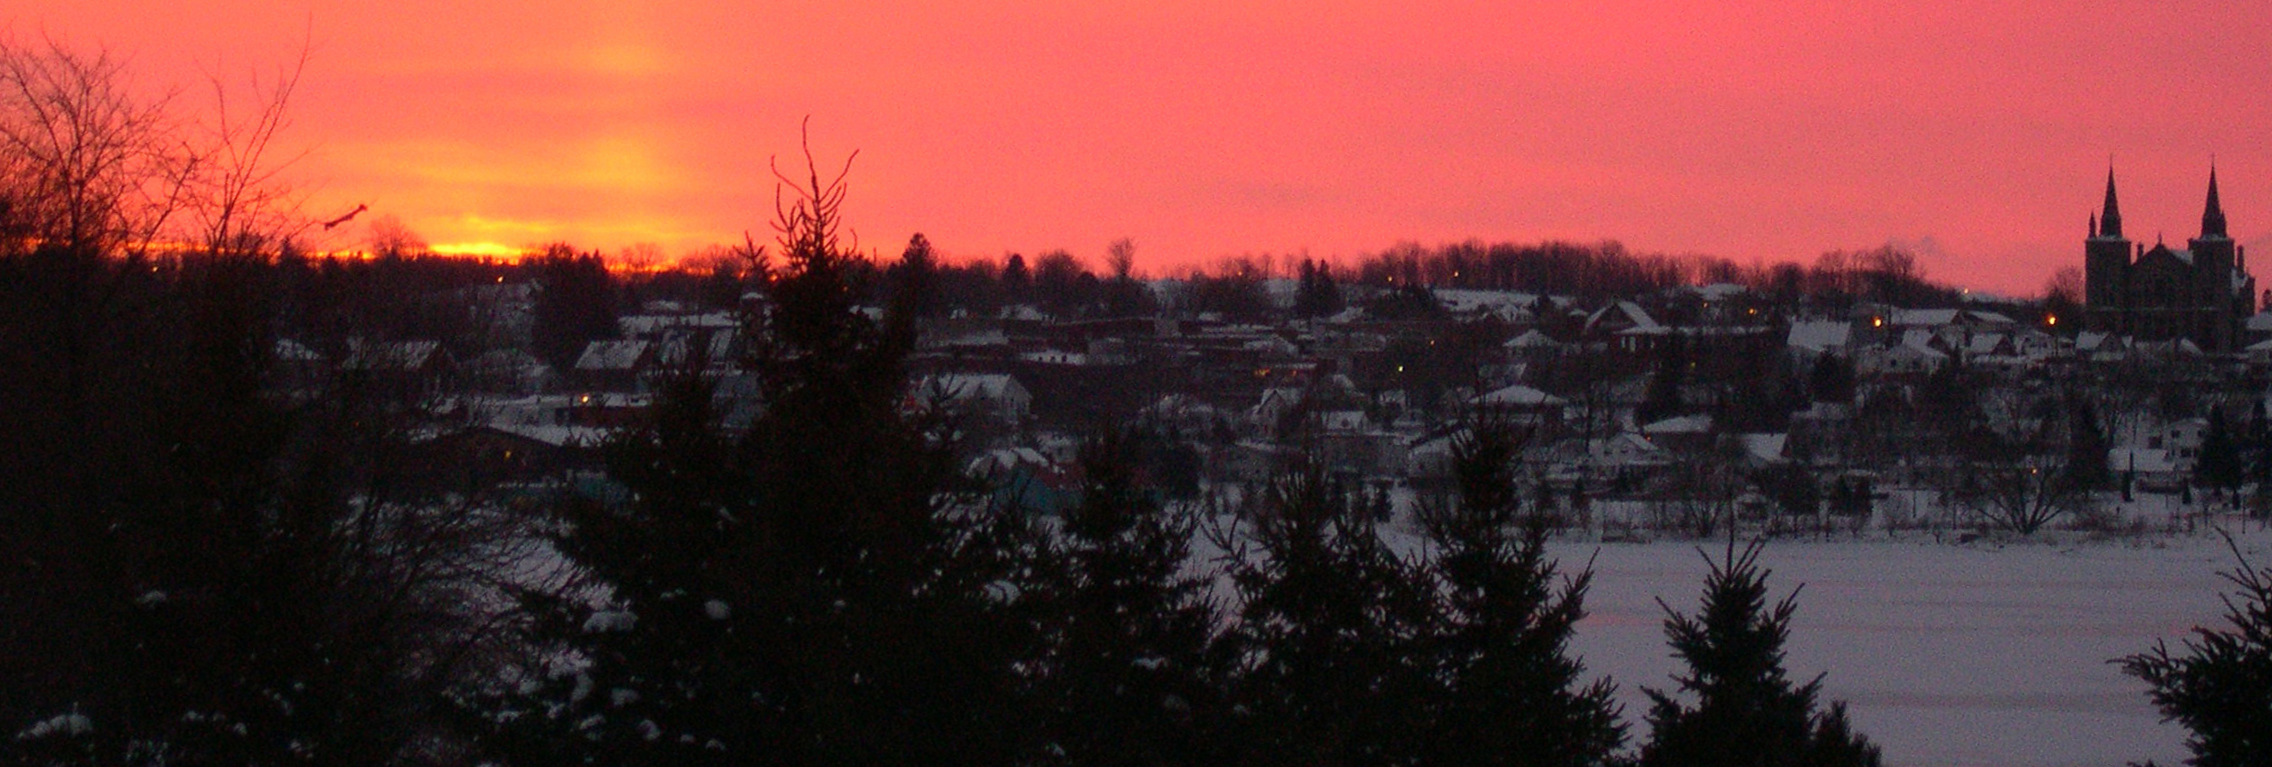 Sunrise over Penetanguishene